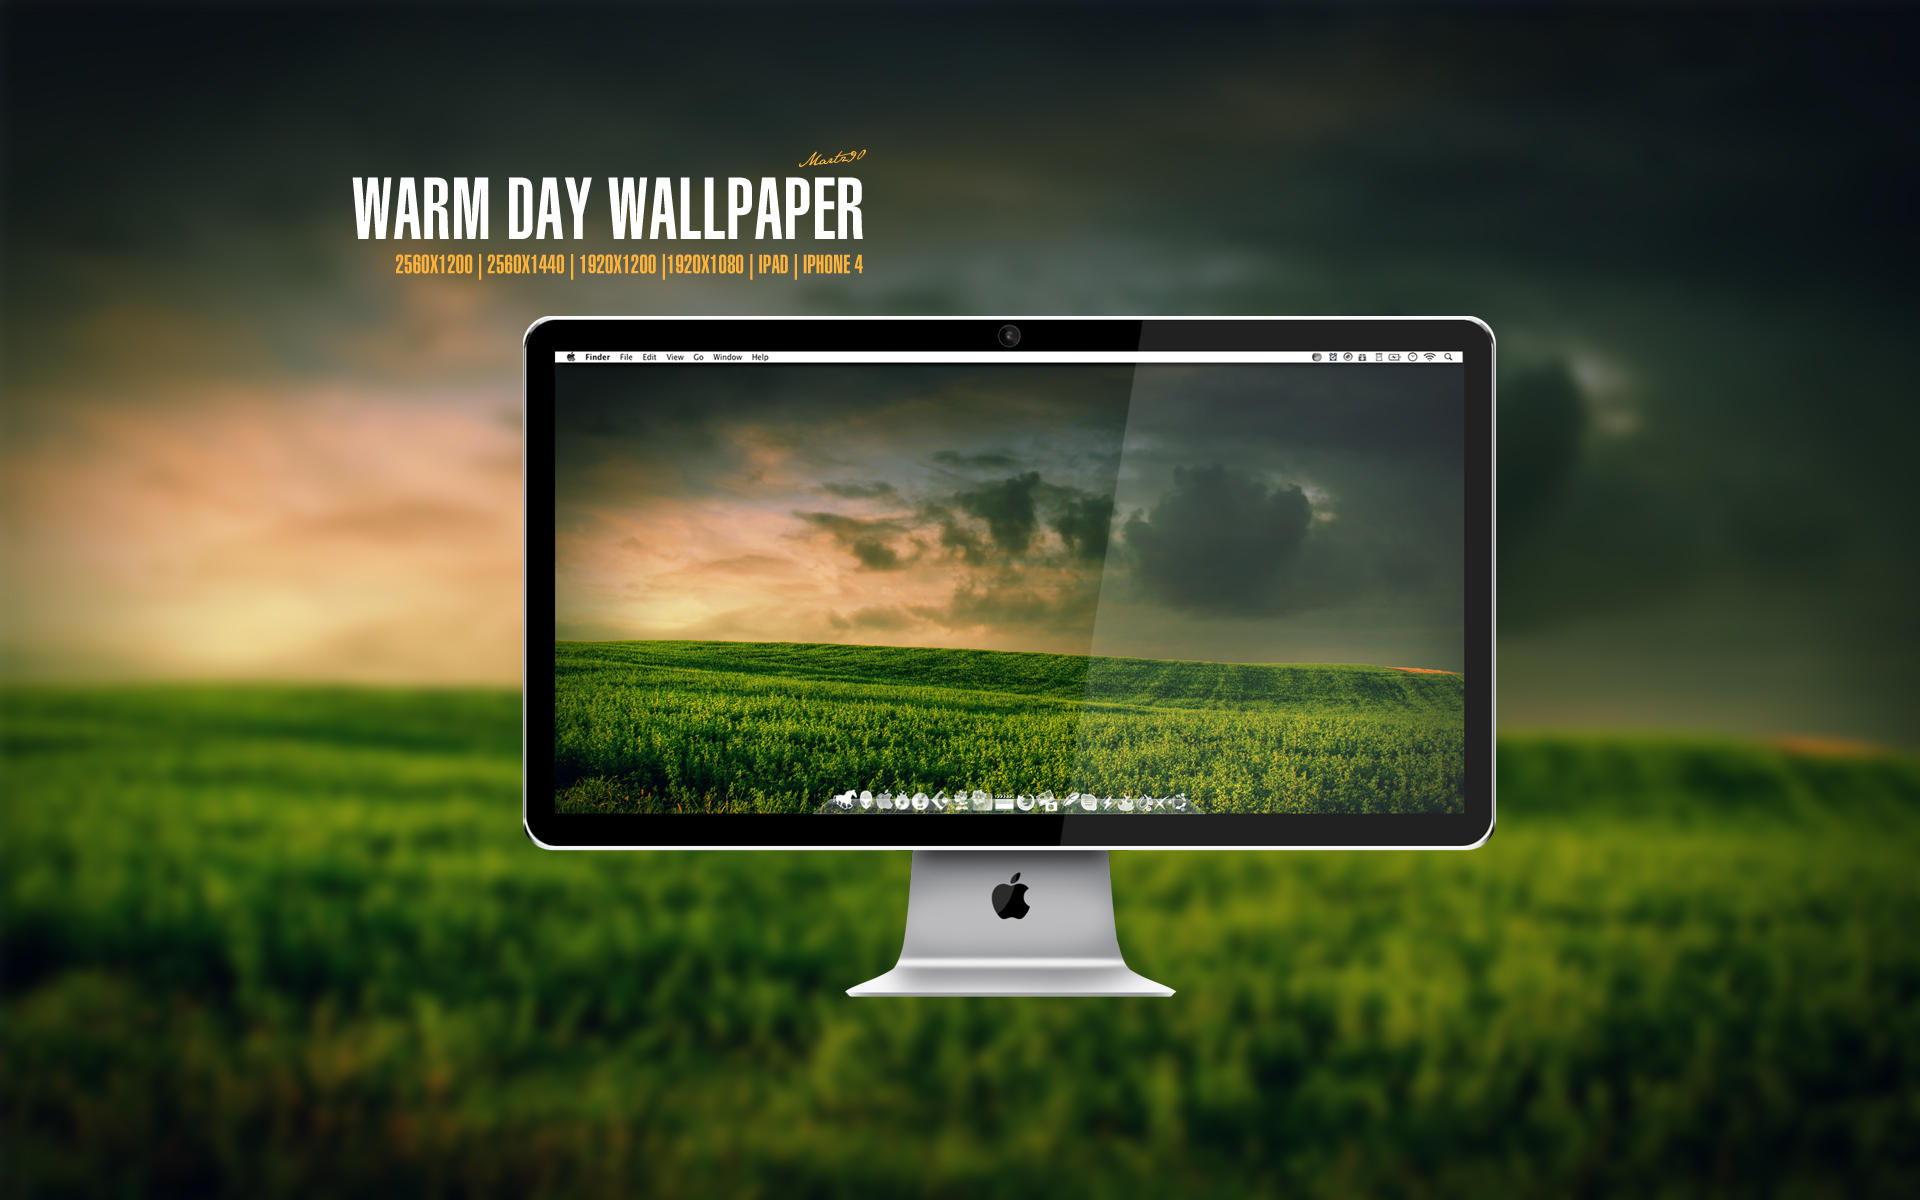 Warm Day Wallpaper by Martz90